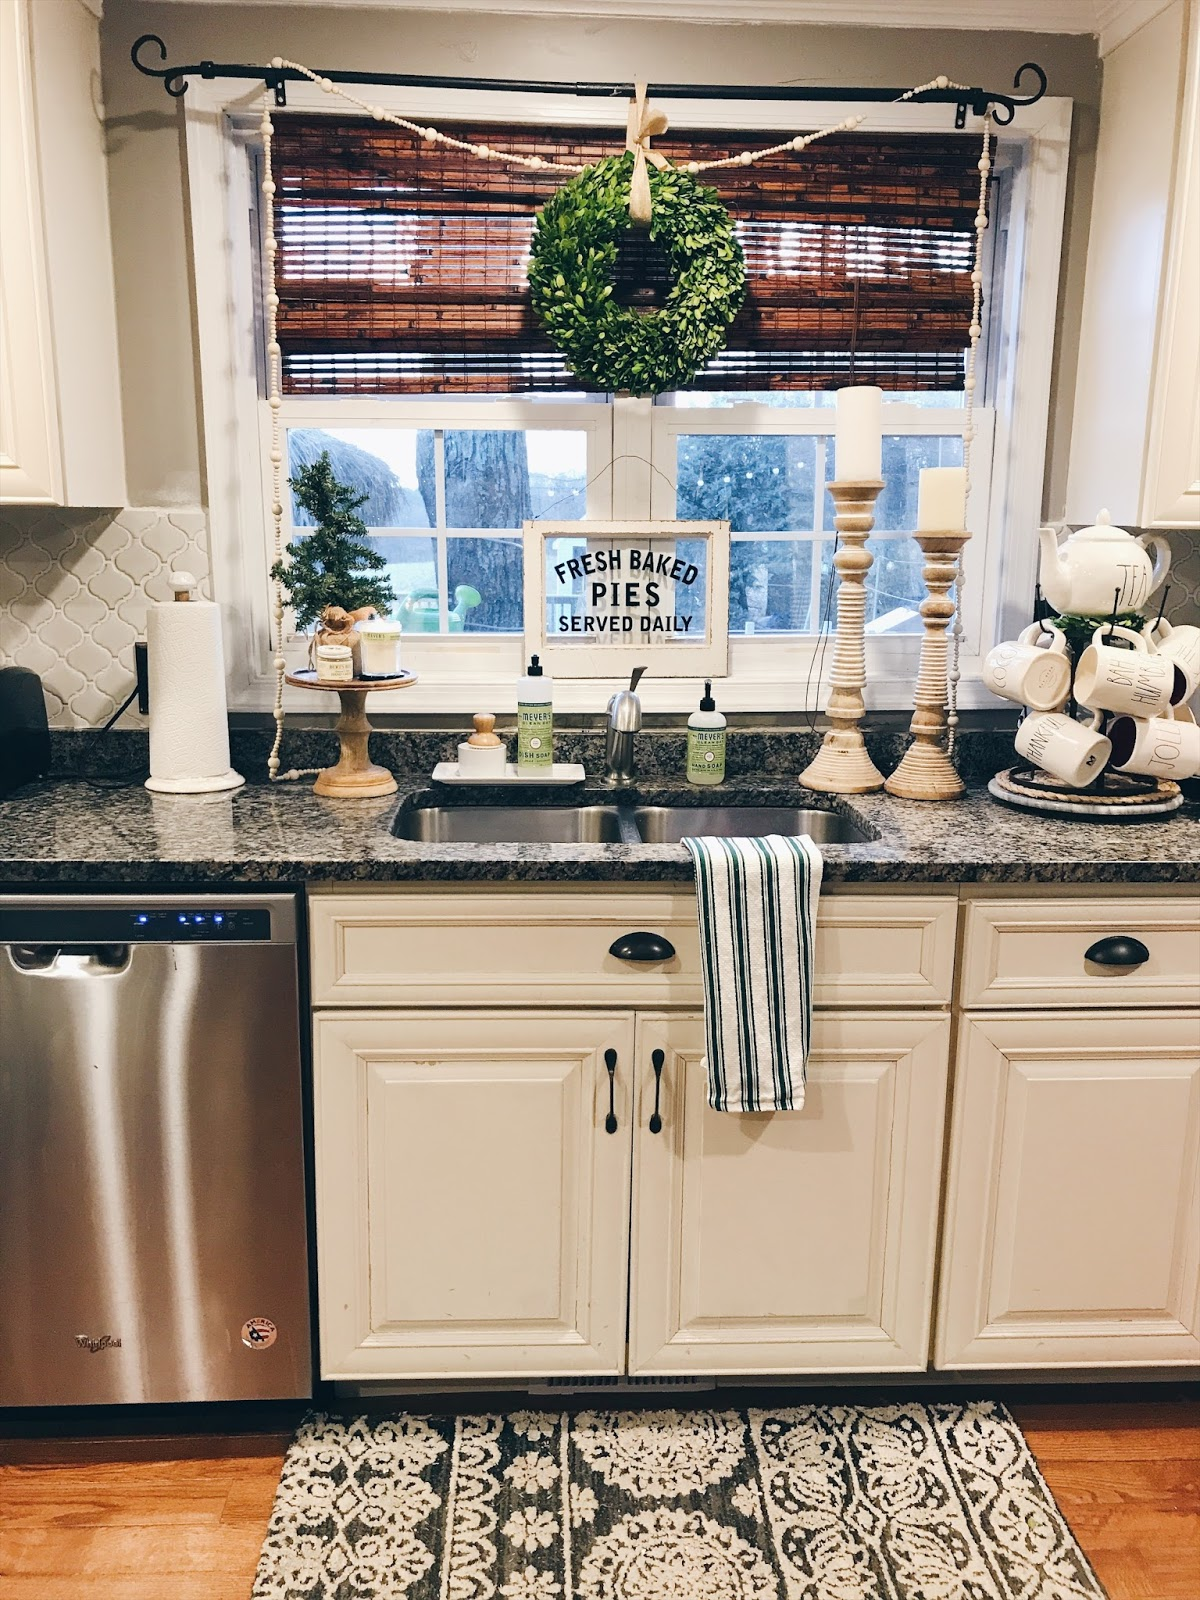 How To Decorate Your Kitchen Oak Cabinet Doors 5 Quick Easy Ways For Christmas The 1 Put Up A Wreath